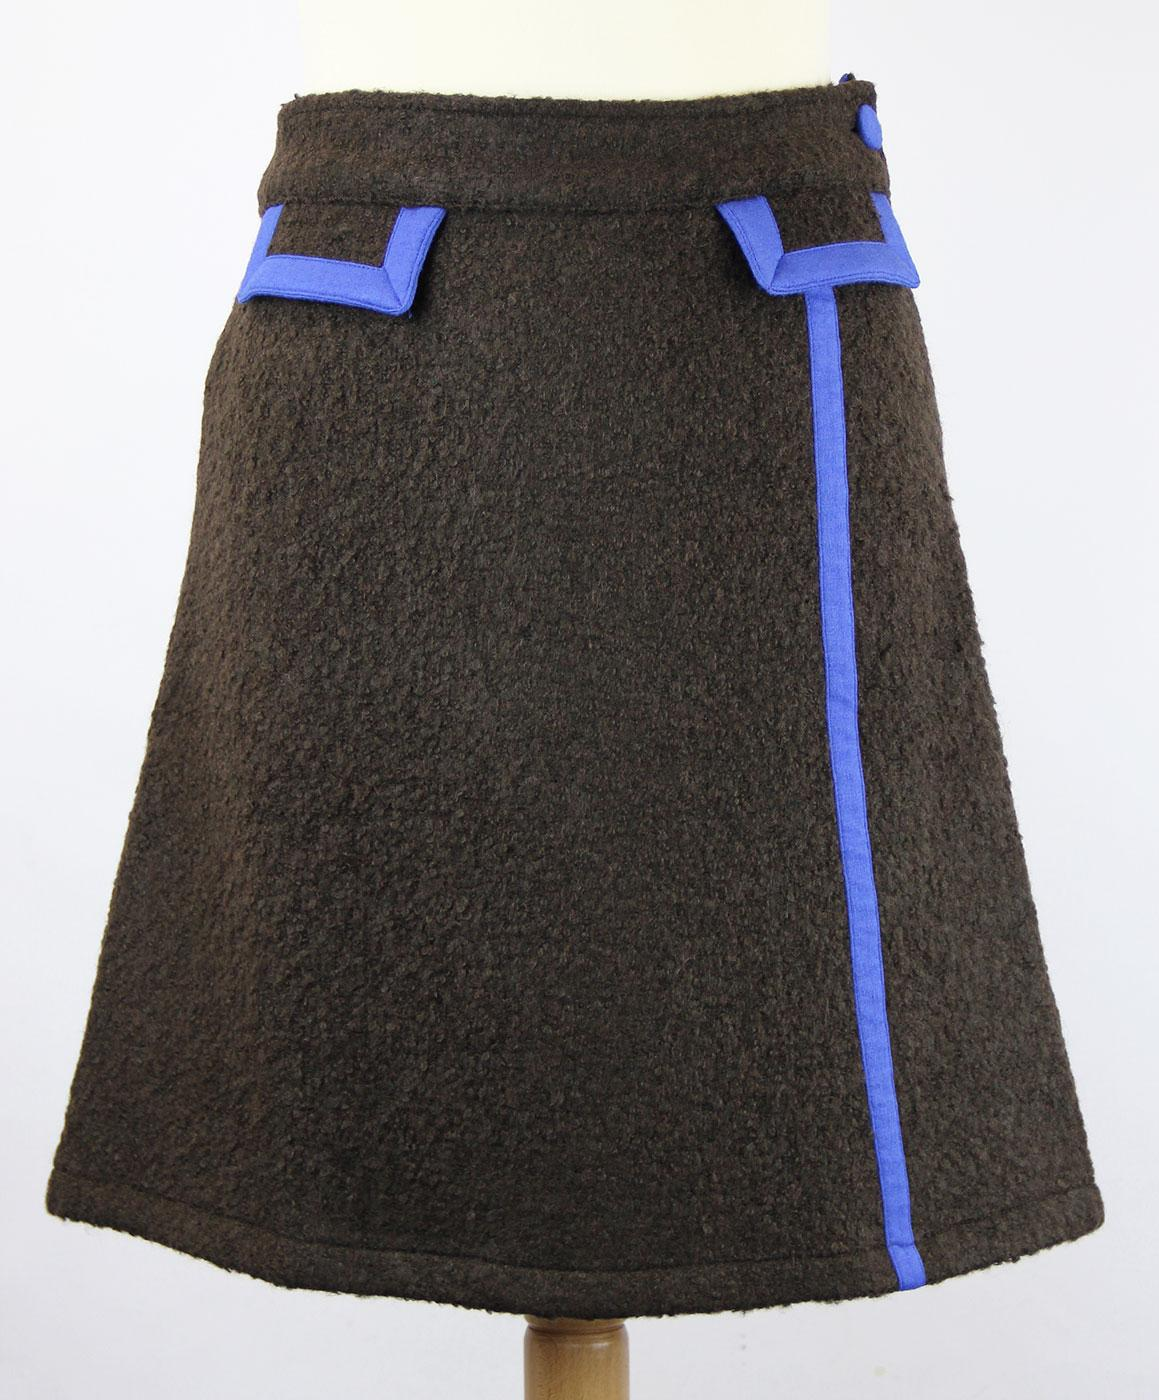 Bastille Above WOW TO GO Retro Mod Airline Skirt